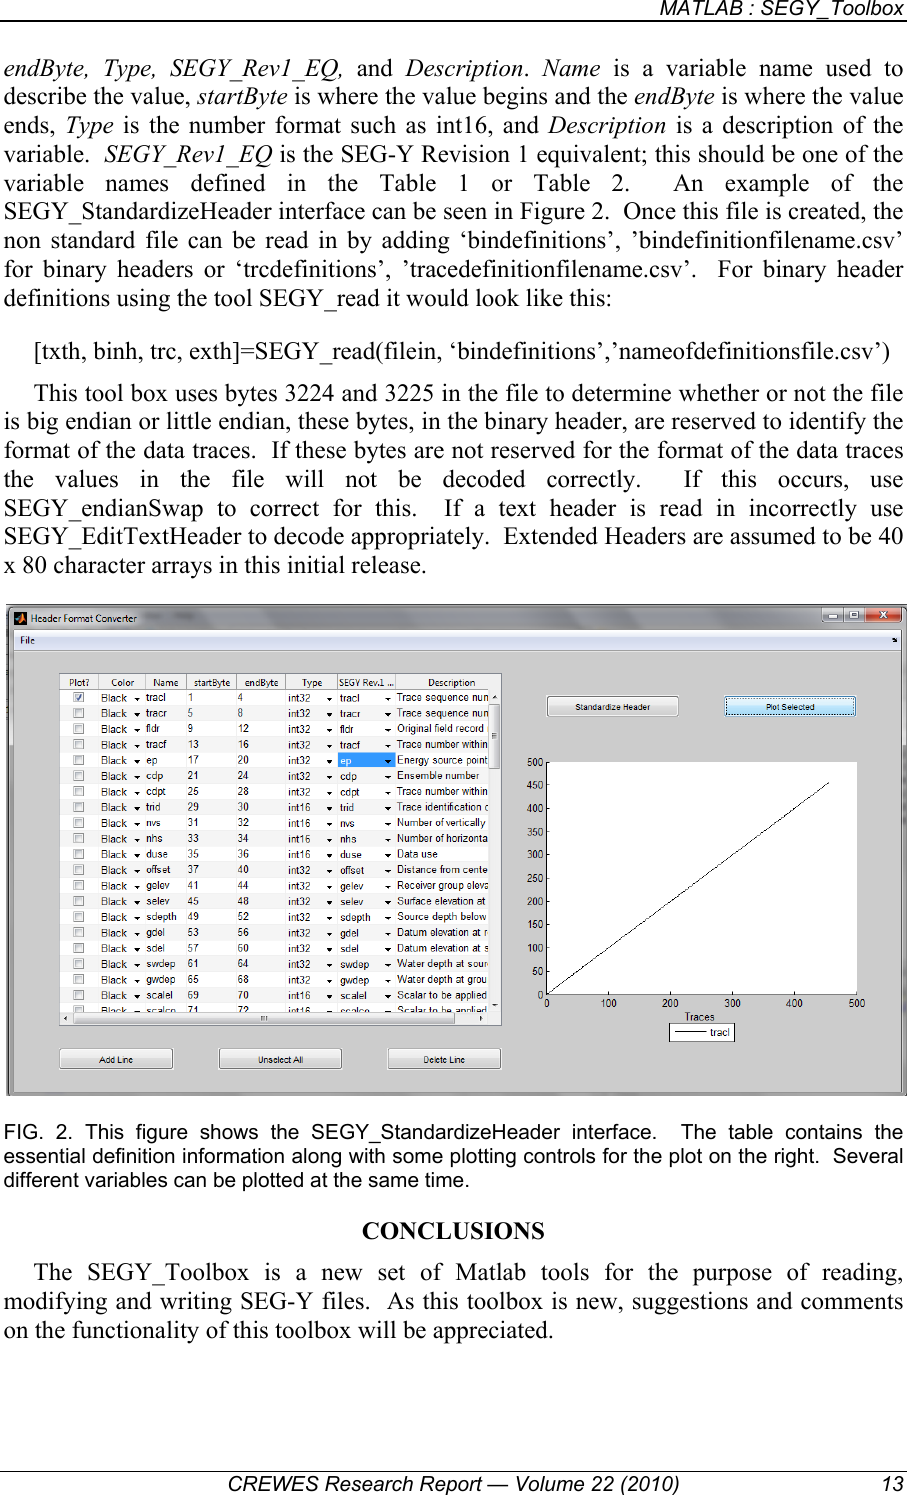 New MATLAB Functions For Reading, Writing And Modifying SEG Y Files